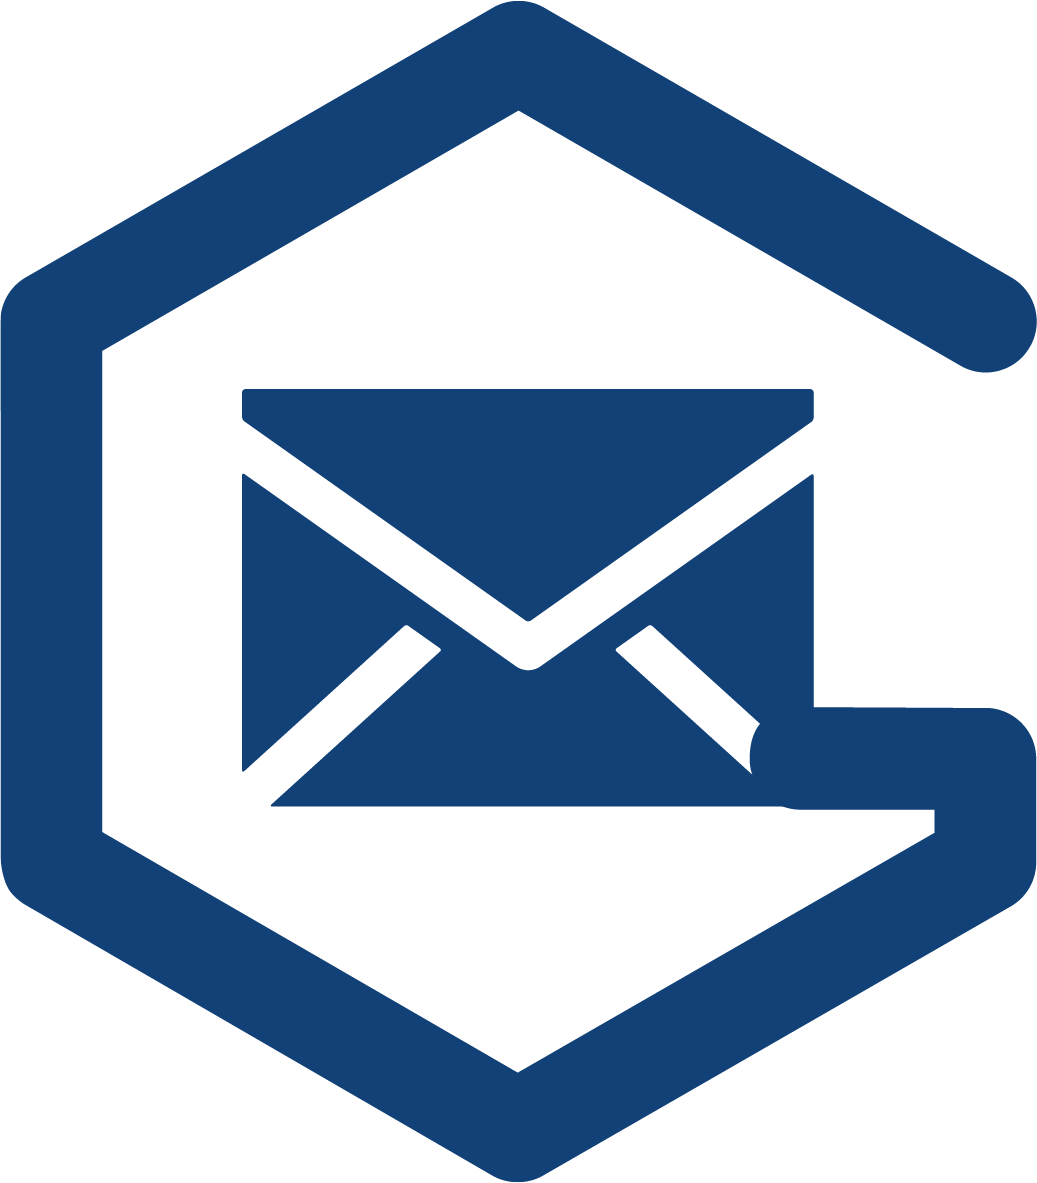 Mail png. Icone